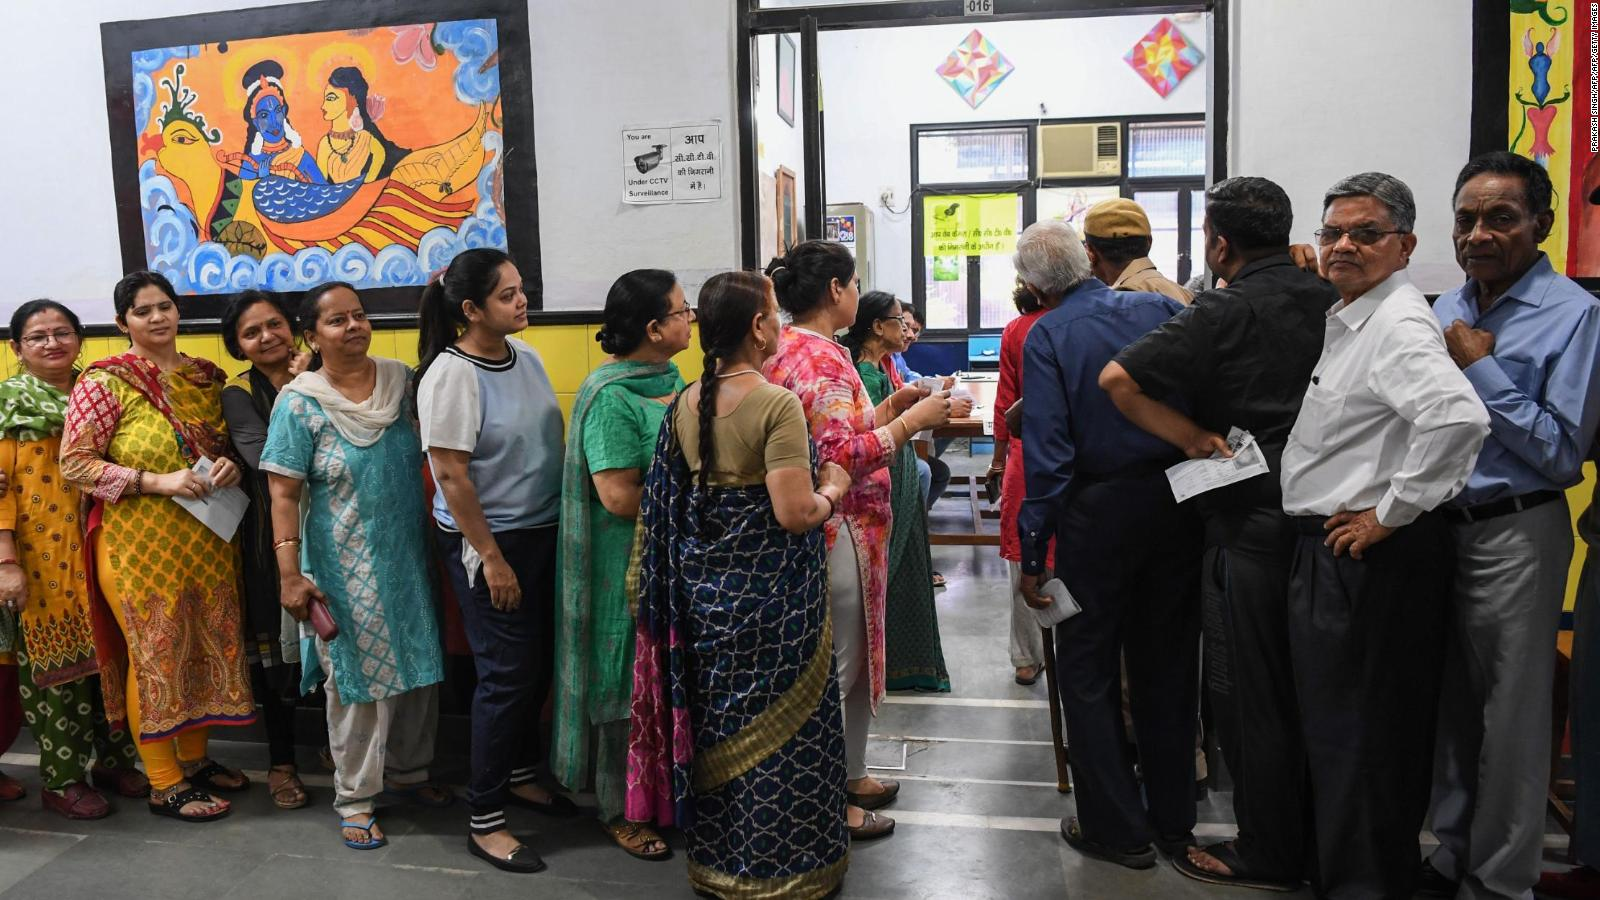 People line up to vote at a polling station during India's general election in Ghaziabad, Uttar Pradesh on April 11, 2019.